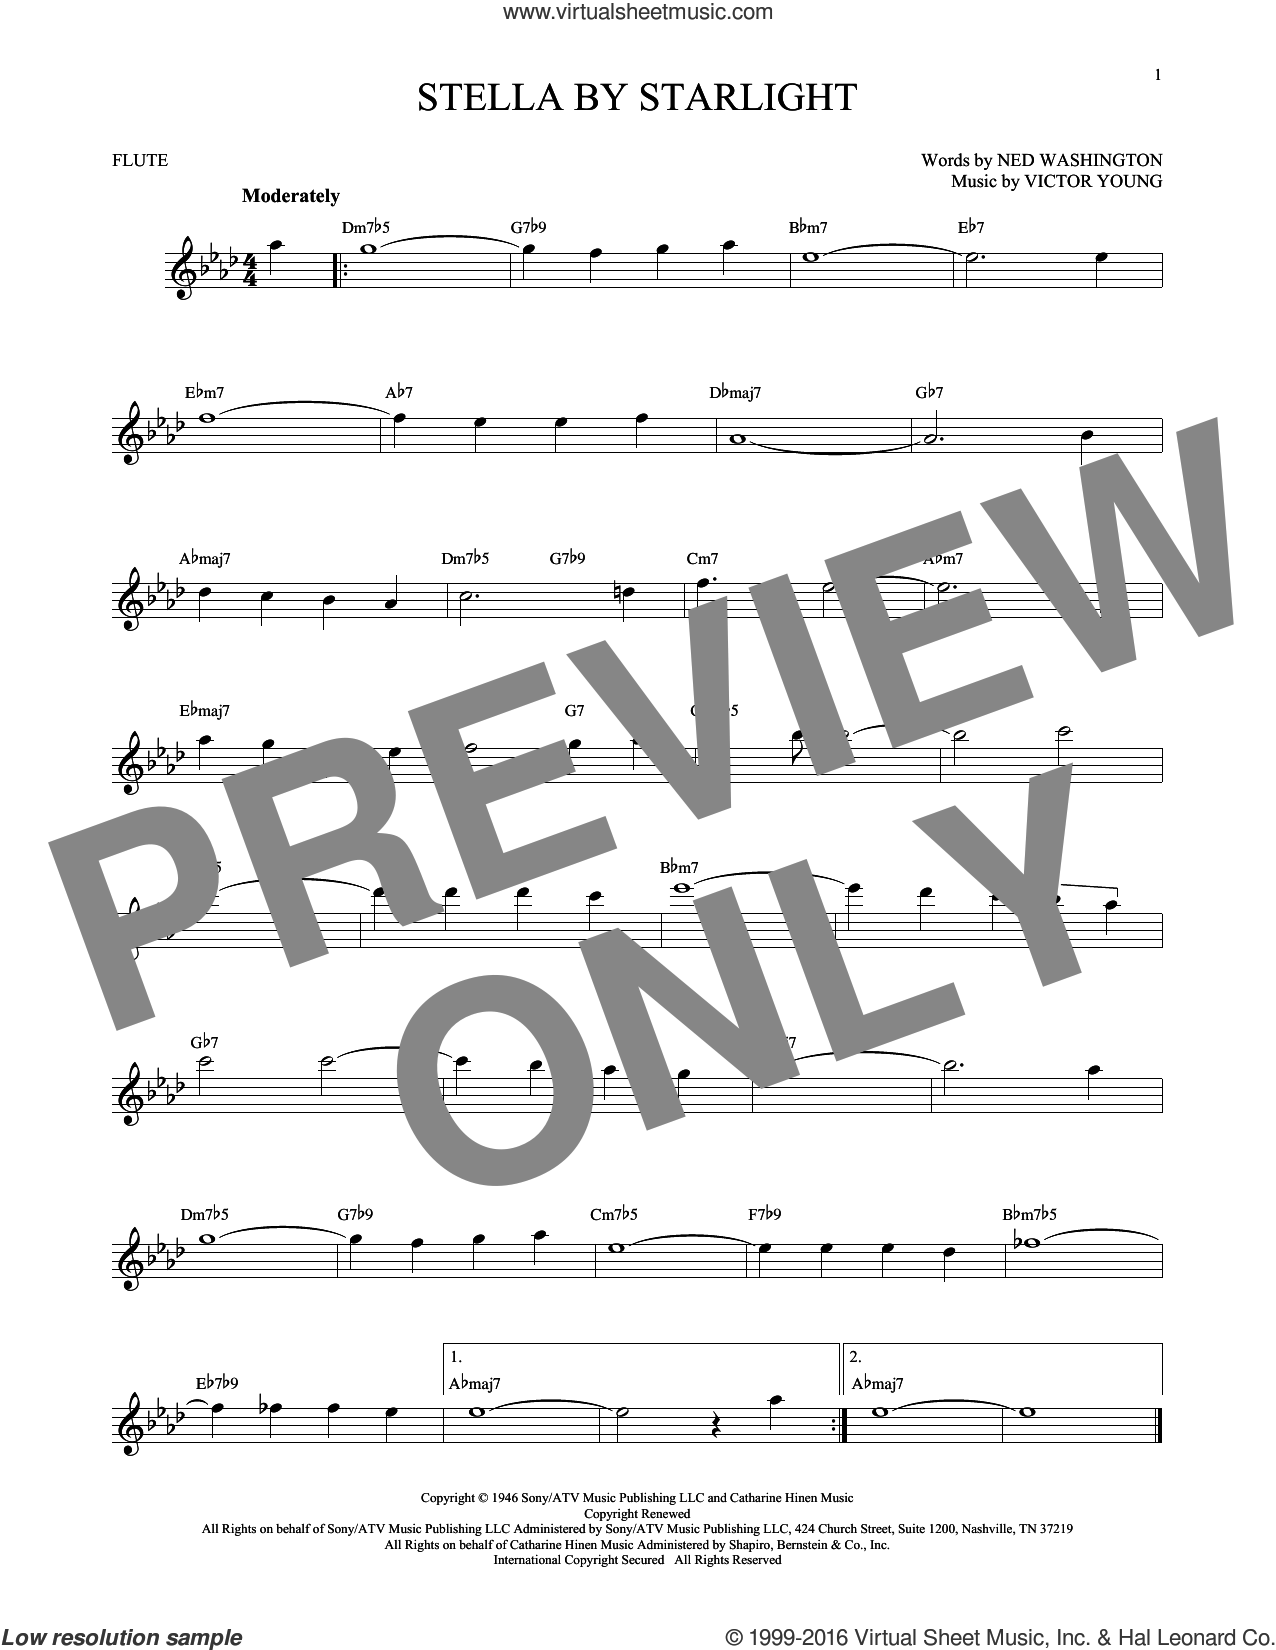 Stella By Starlight sheet music for flute solo by Ned Washington, Ray Charles and Victor Young, intermediate skill level